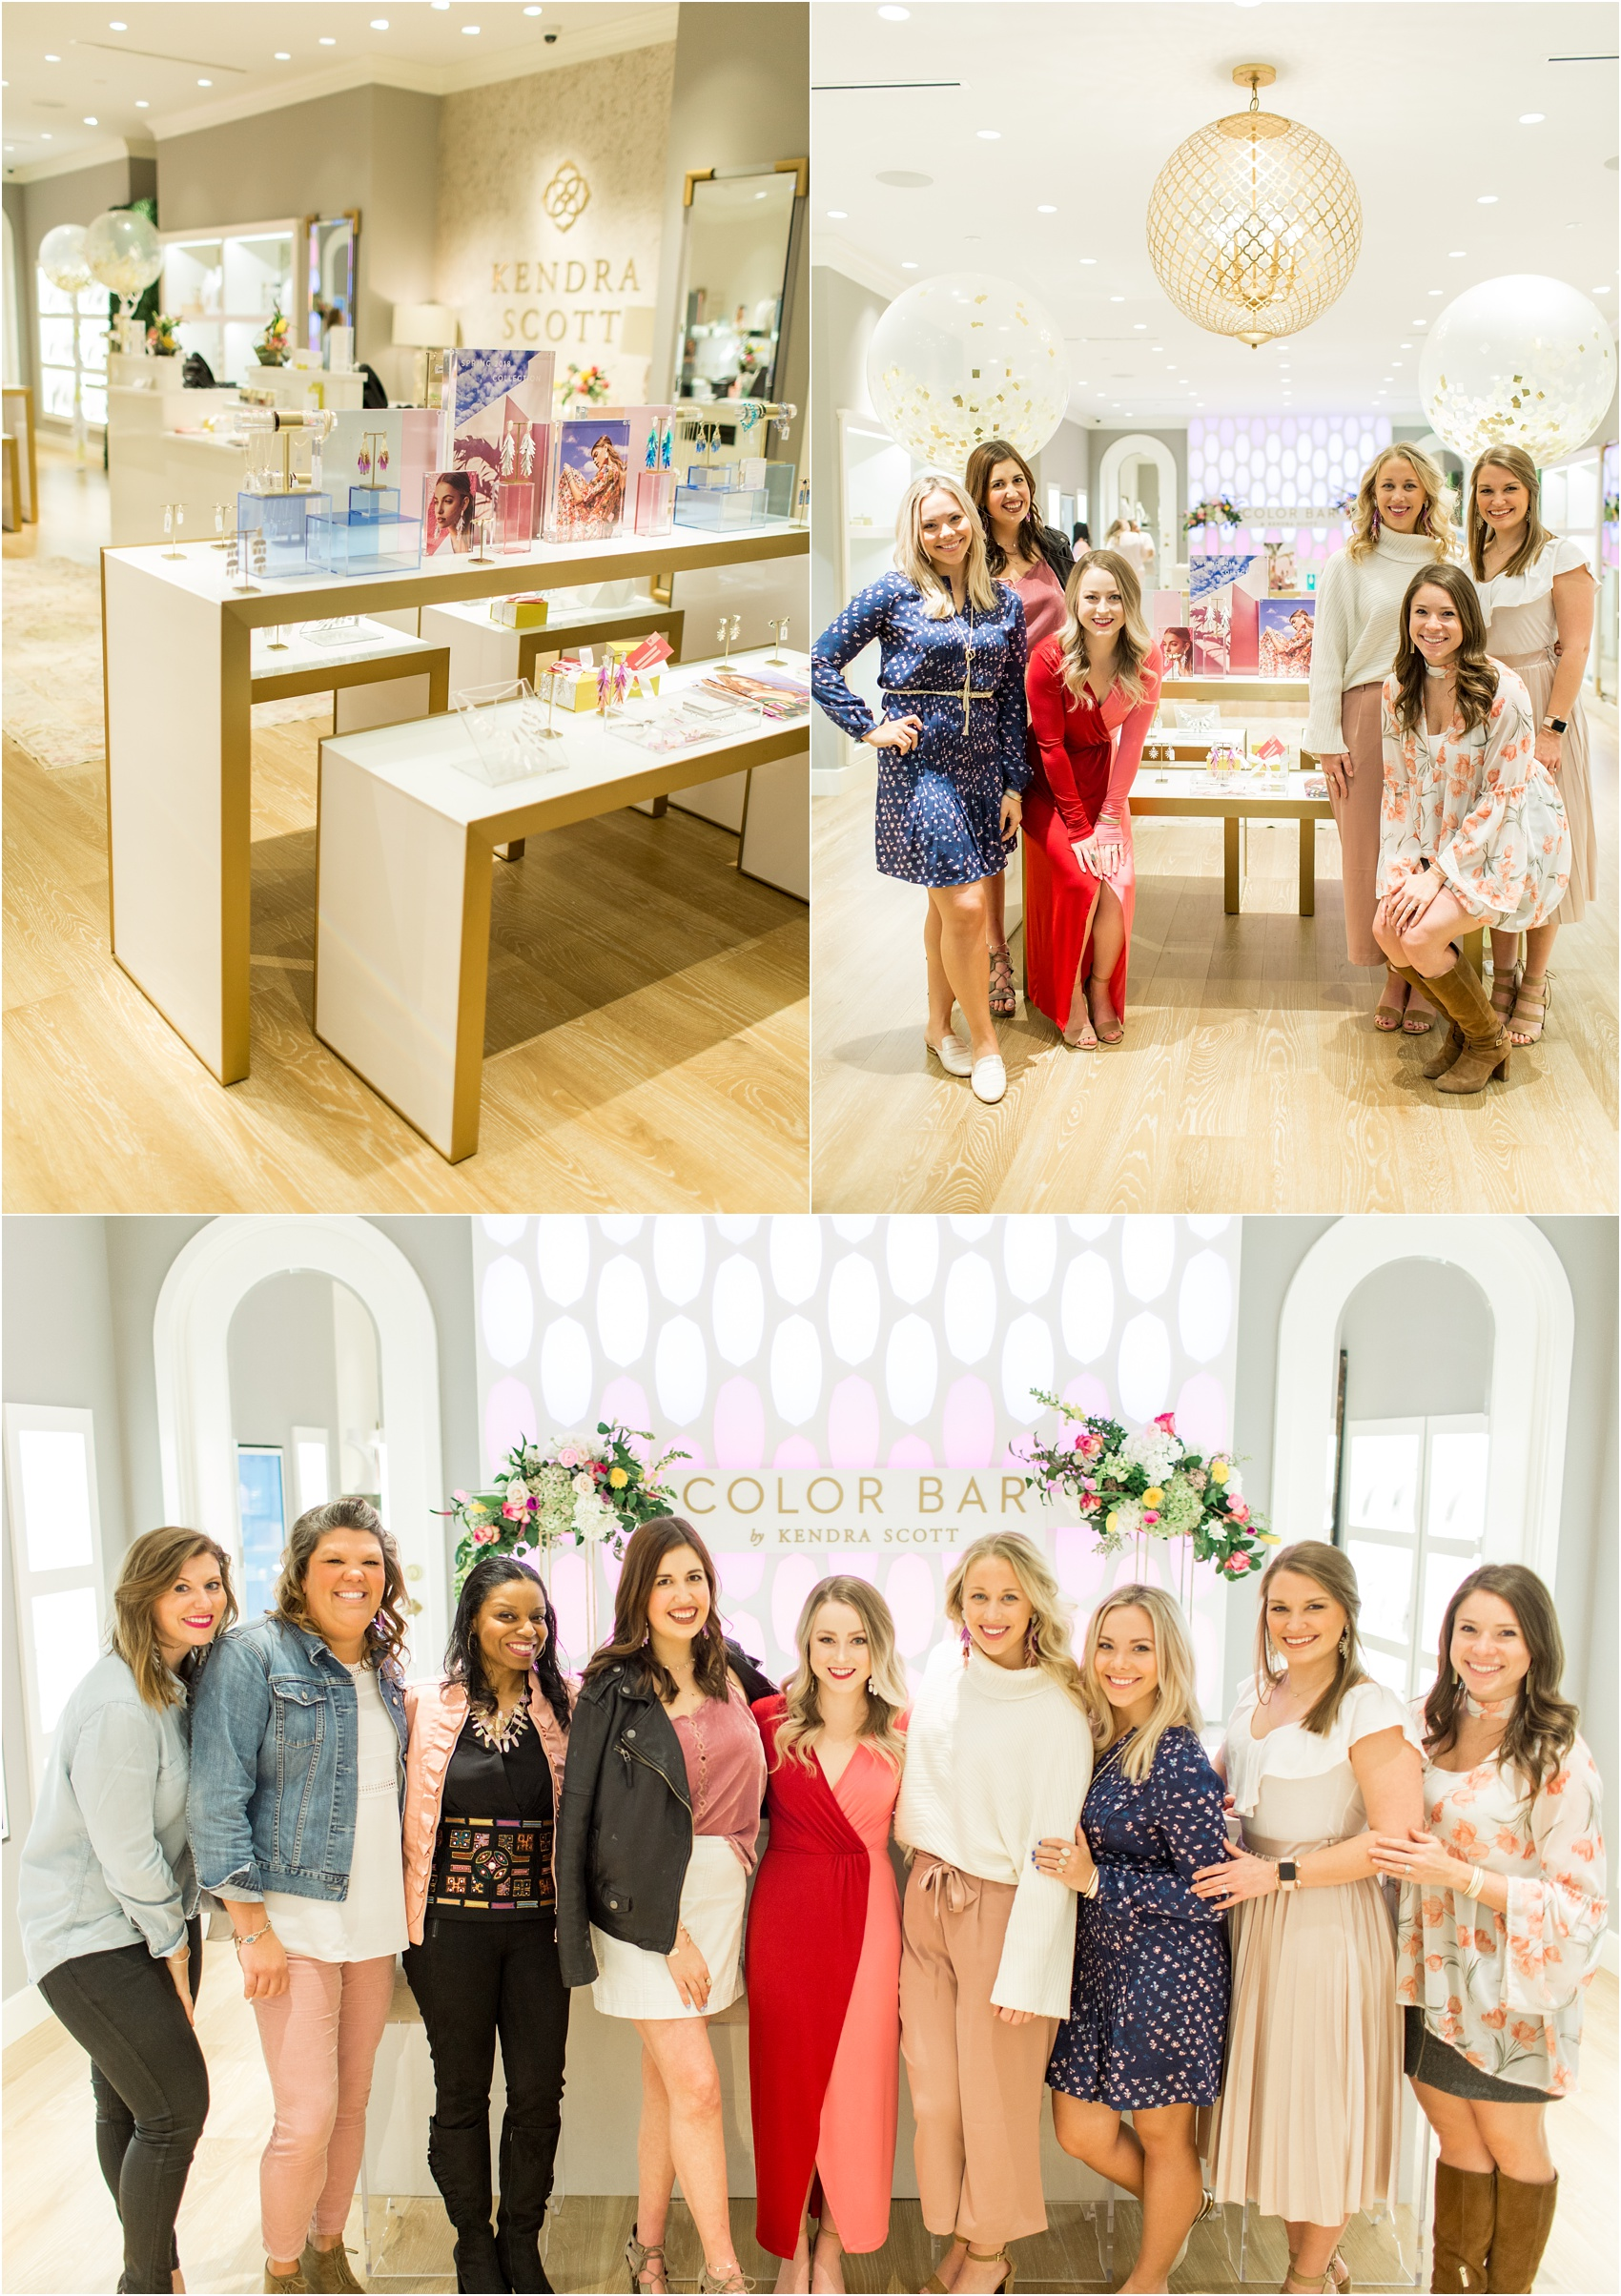 Savannah Eve Photography- Perimeter- Kendra Scott Grand Opening-5.jpg